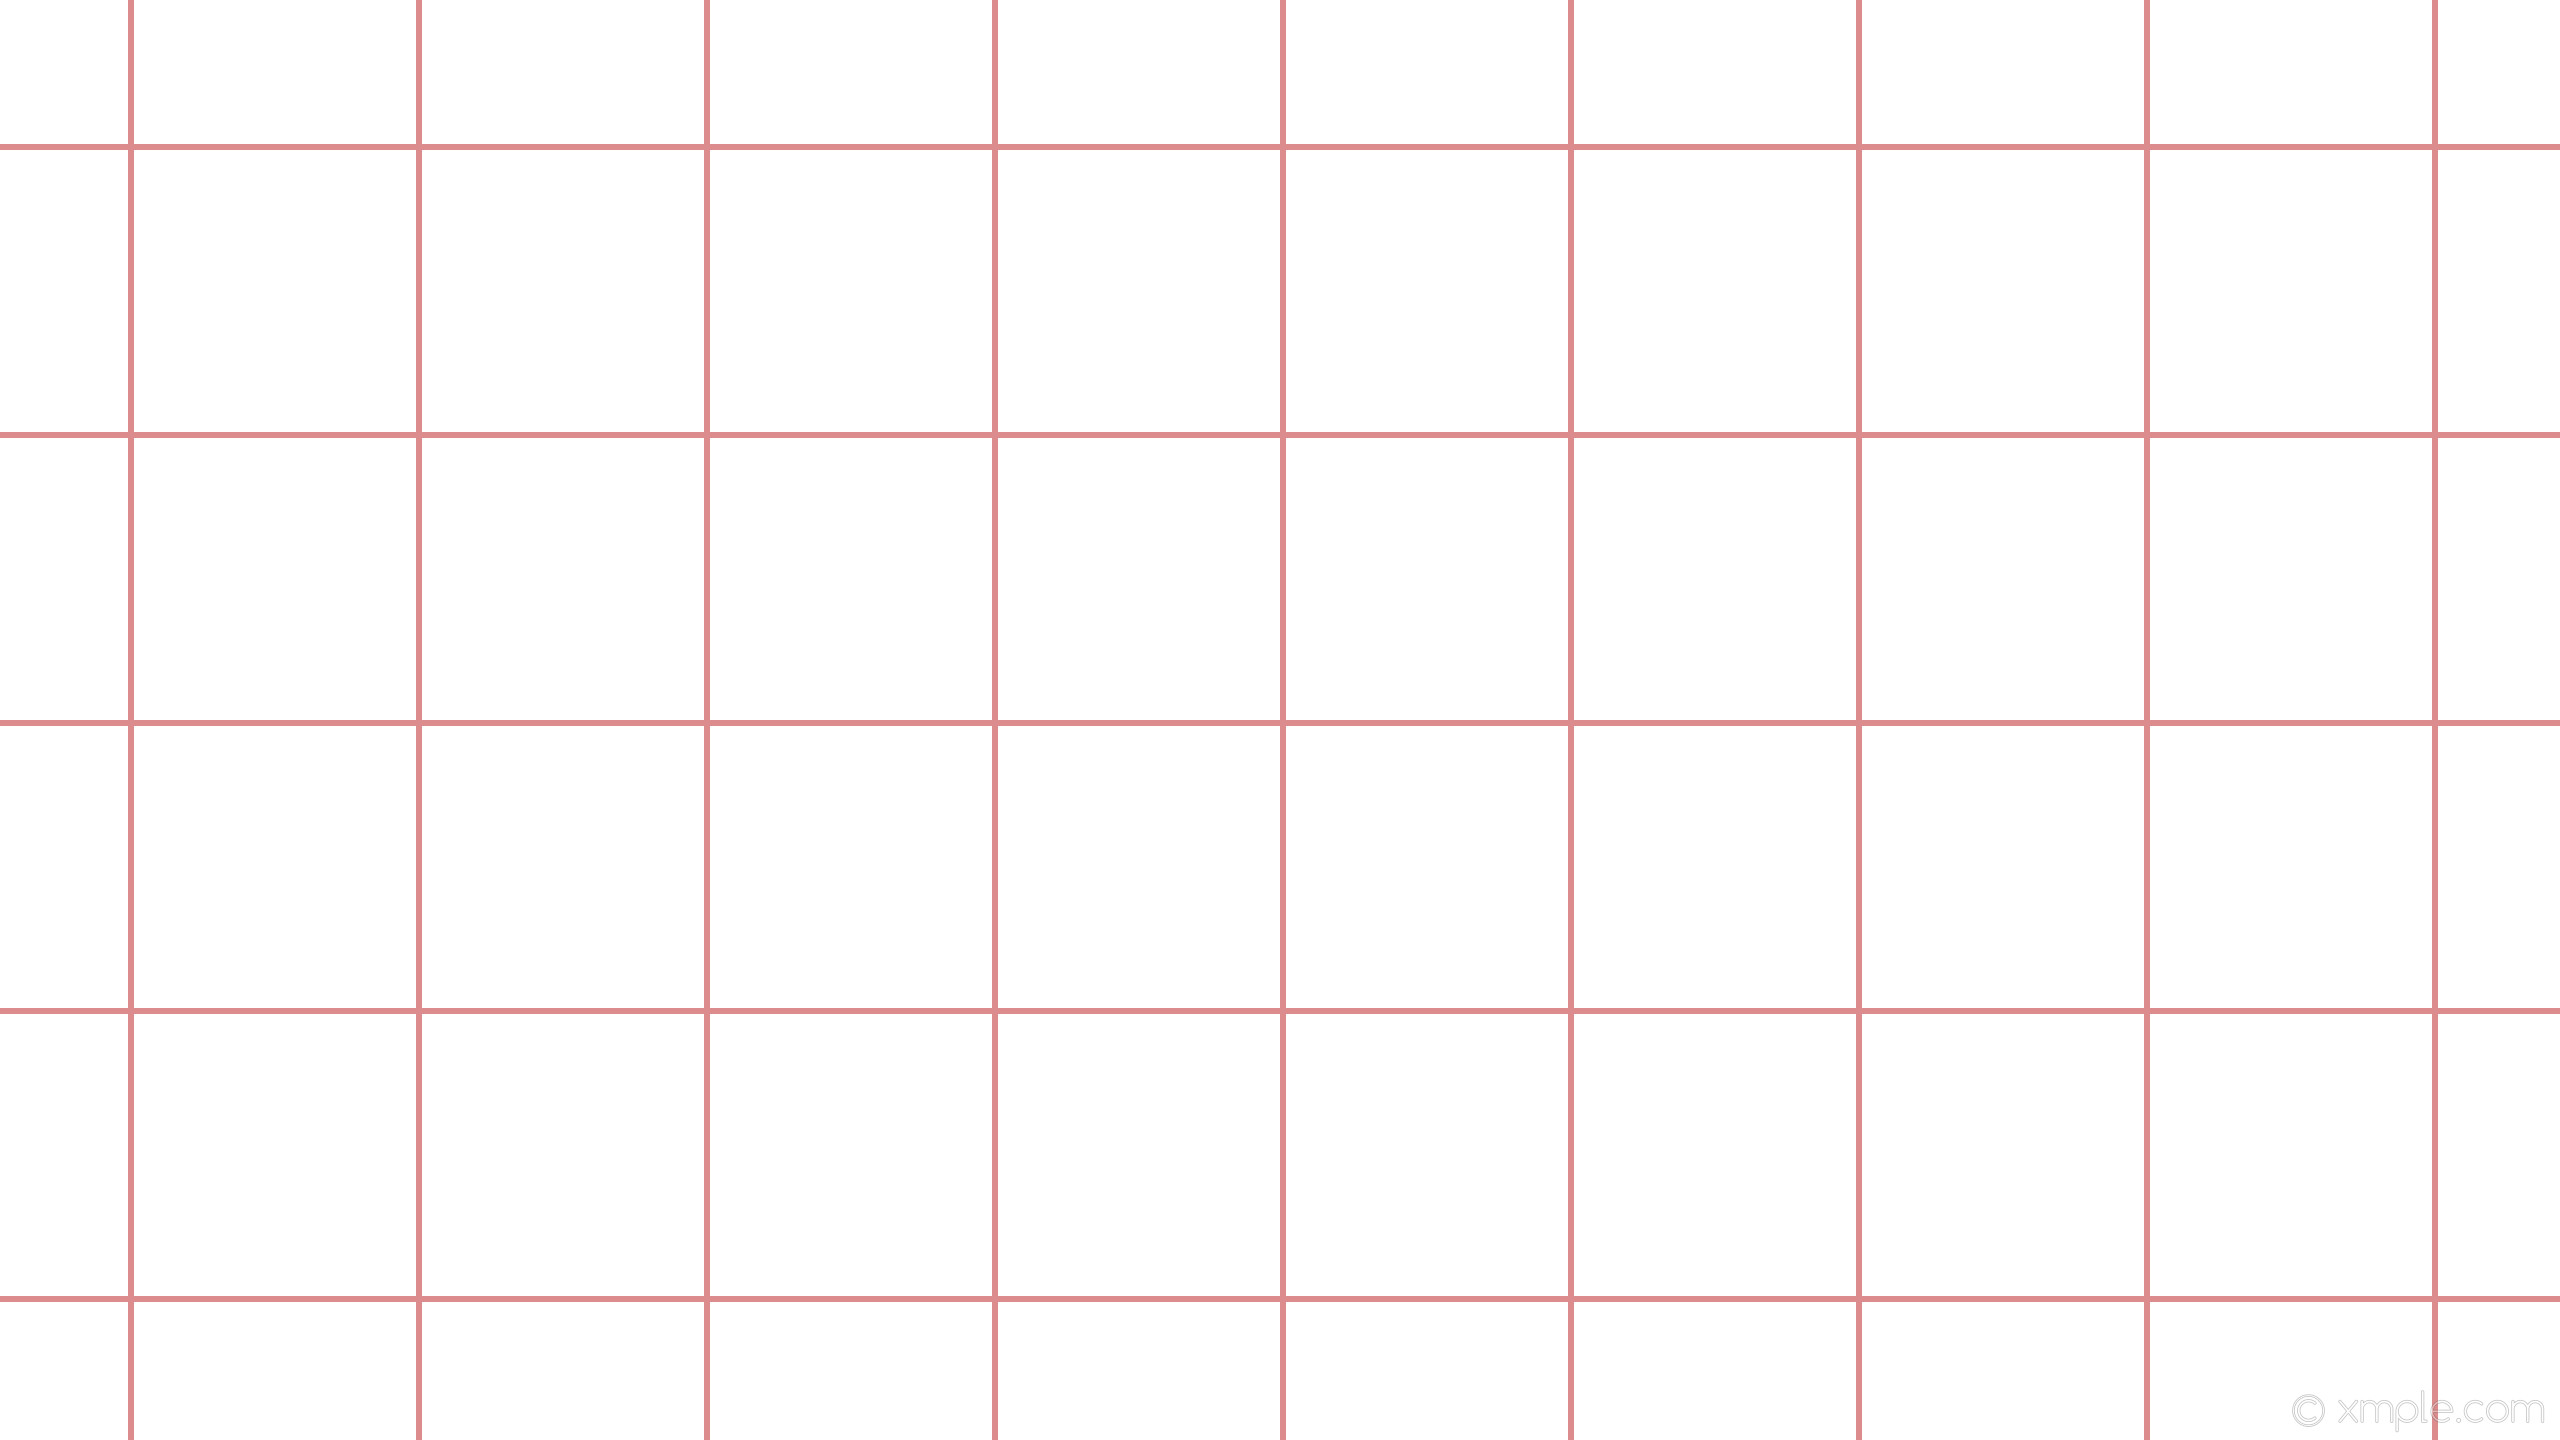 2560x1440 wallpaper graph paper red white grid indian red #ffffff #cd5c5c 0° 6px 288px